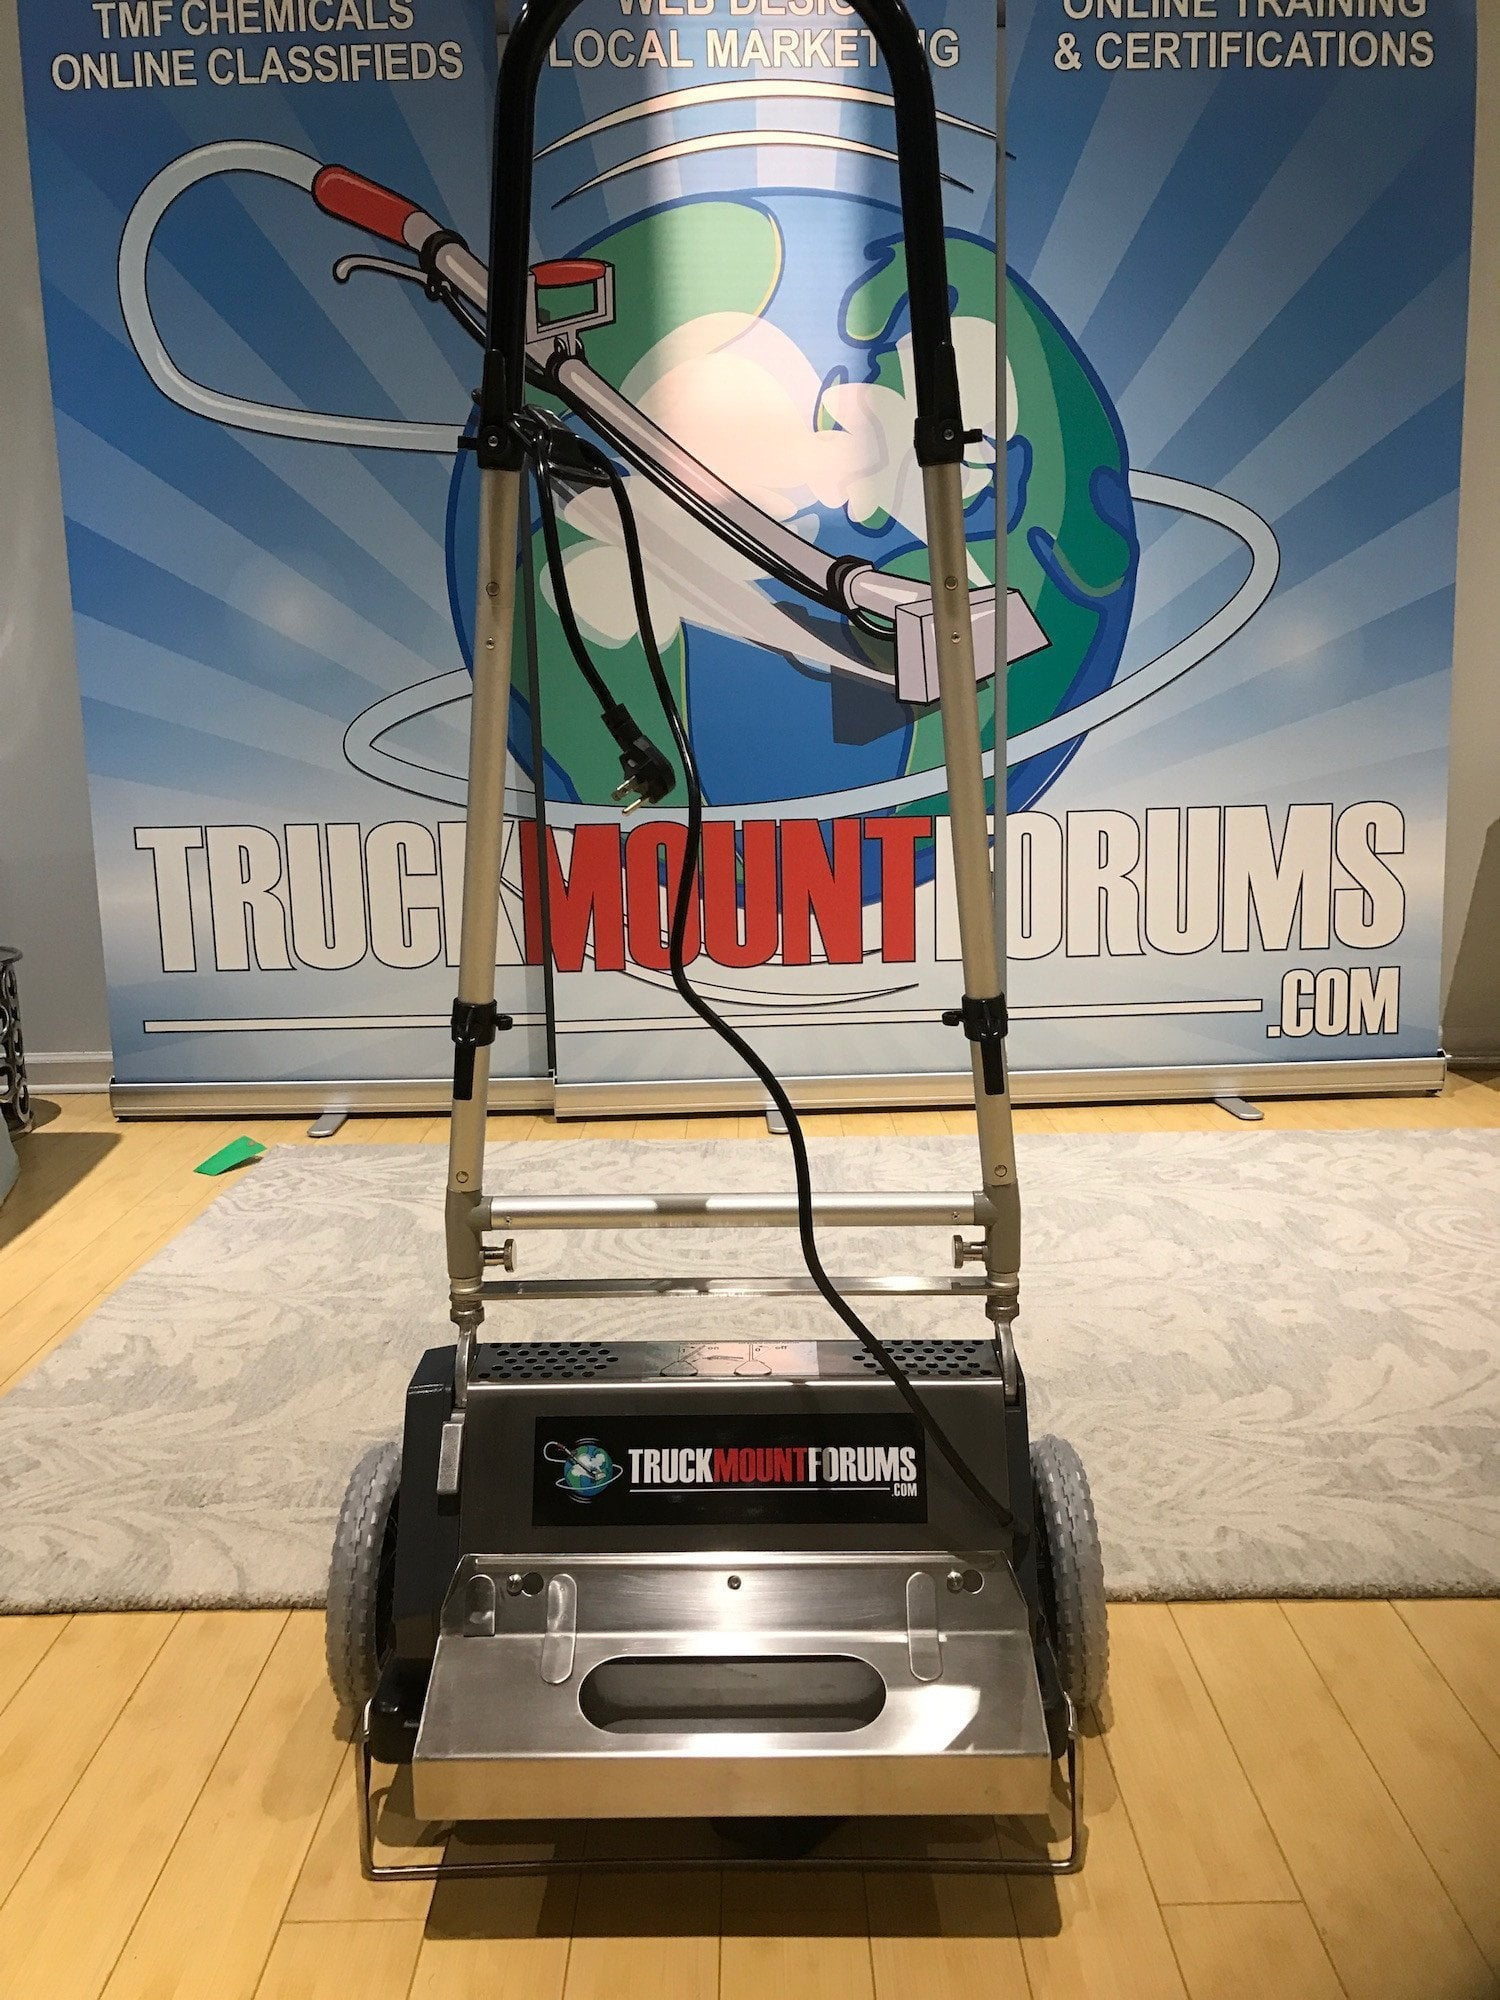 "15"" Multi-Clean Counter Rotating Brush (CRB) - TMF Store: Carpet Cleaning Equipment & Chemicals from TruckMountForums"